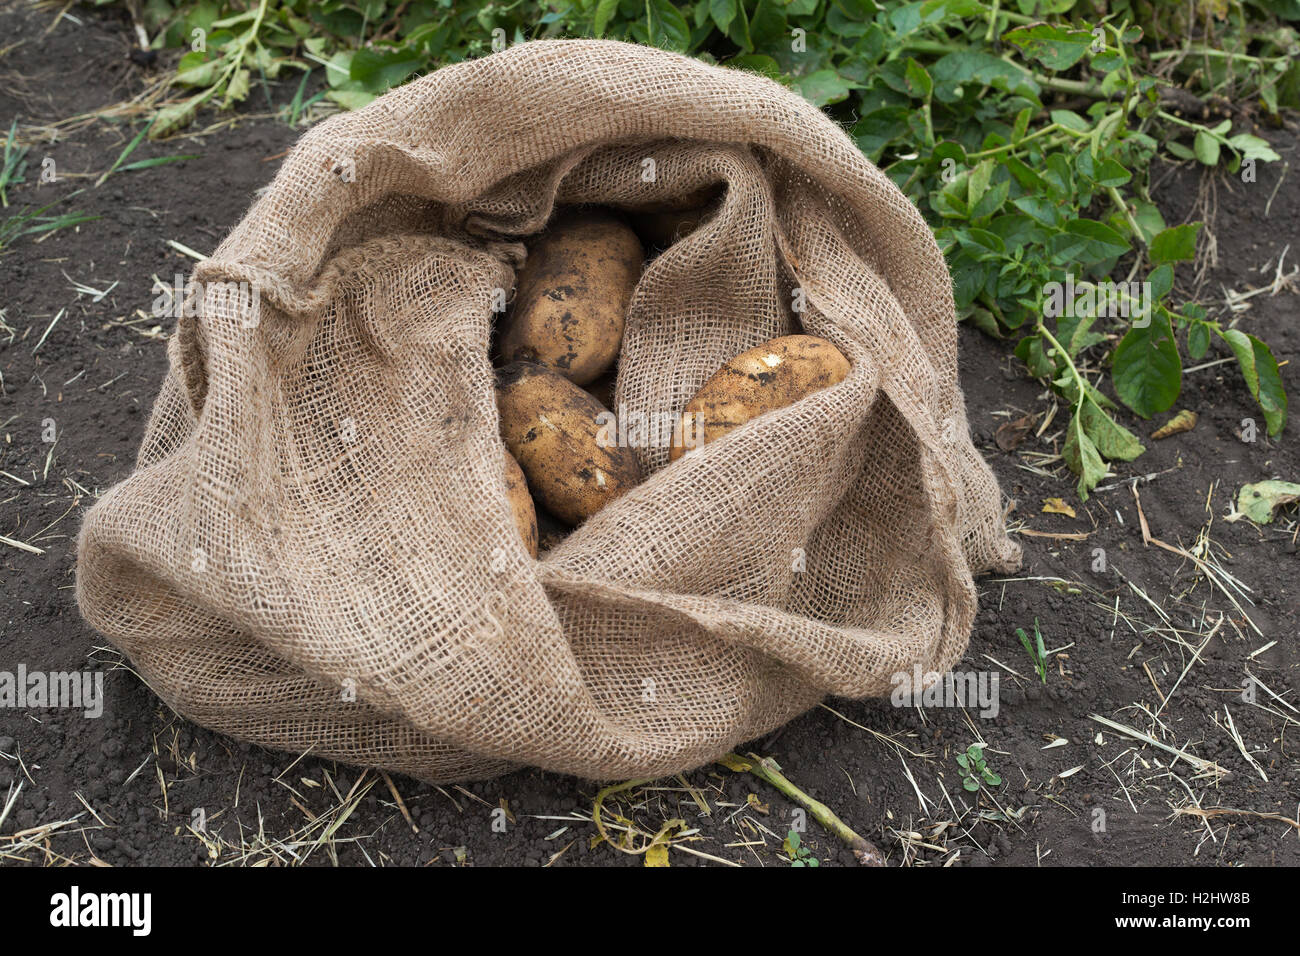 Newly harvested sack of potatoes in farm field - Stock Image